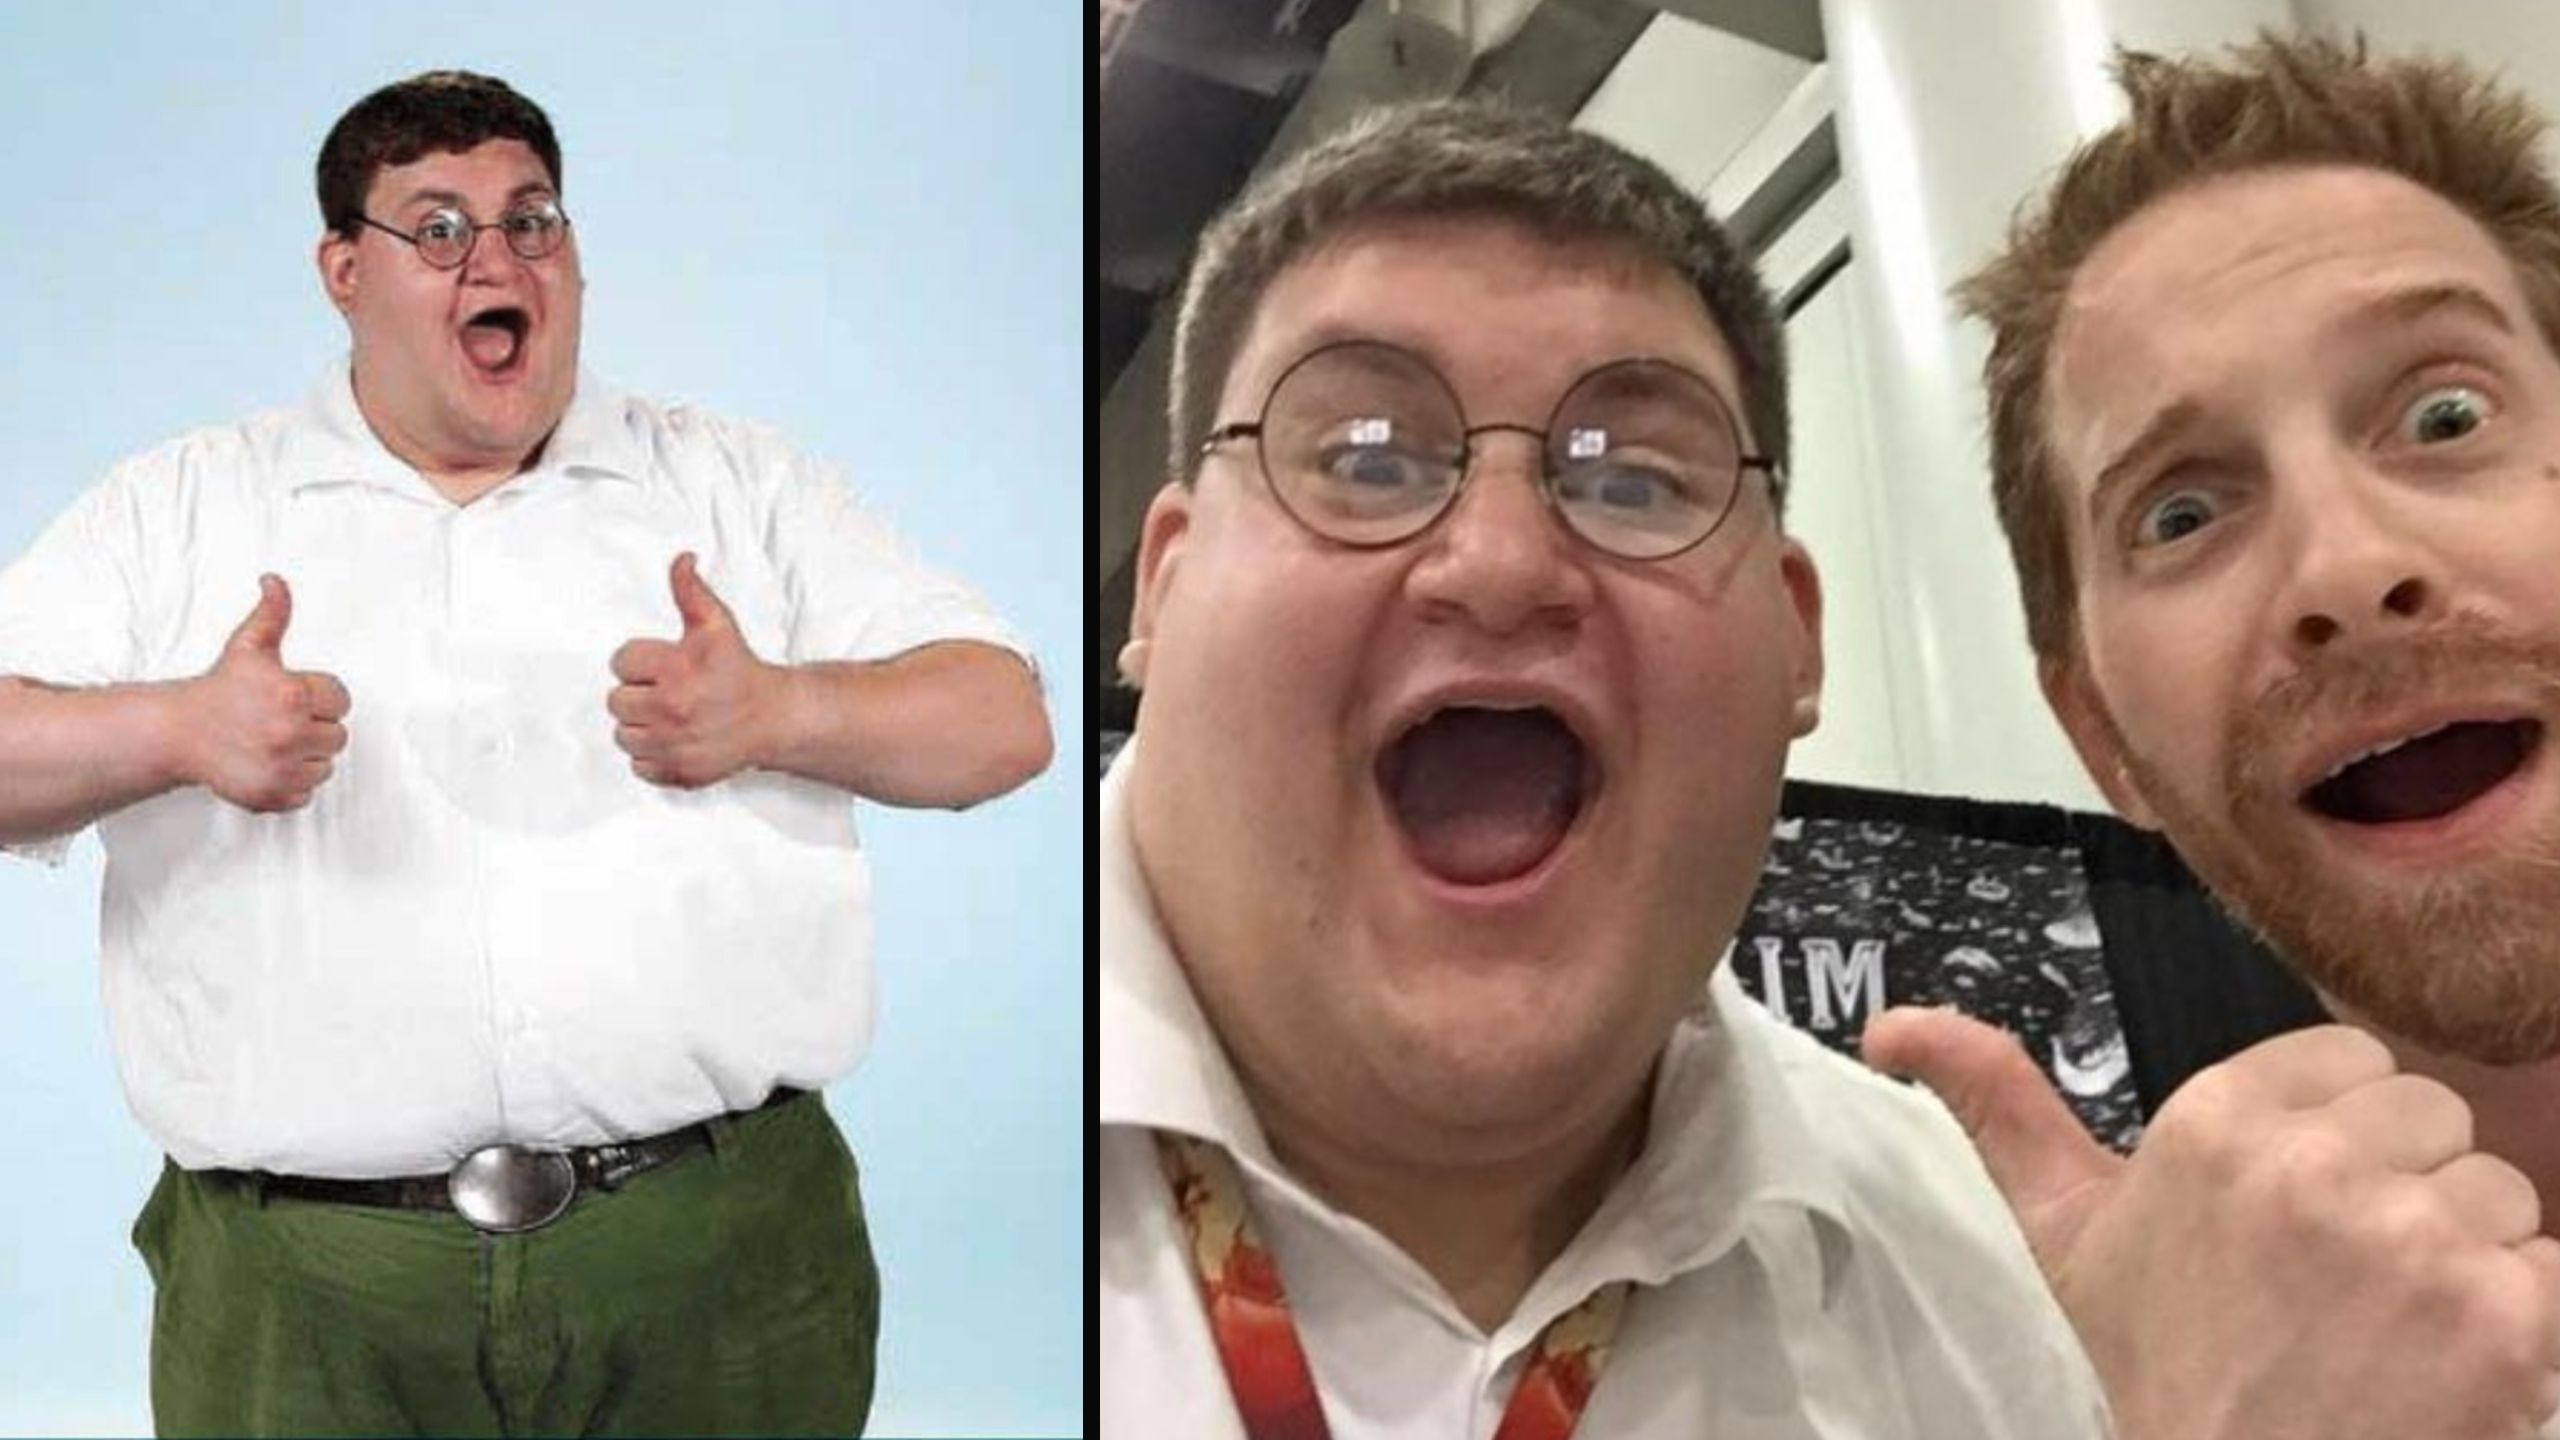 Real Life Peter Griffin Gets Shout out on Family Guy